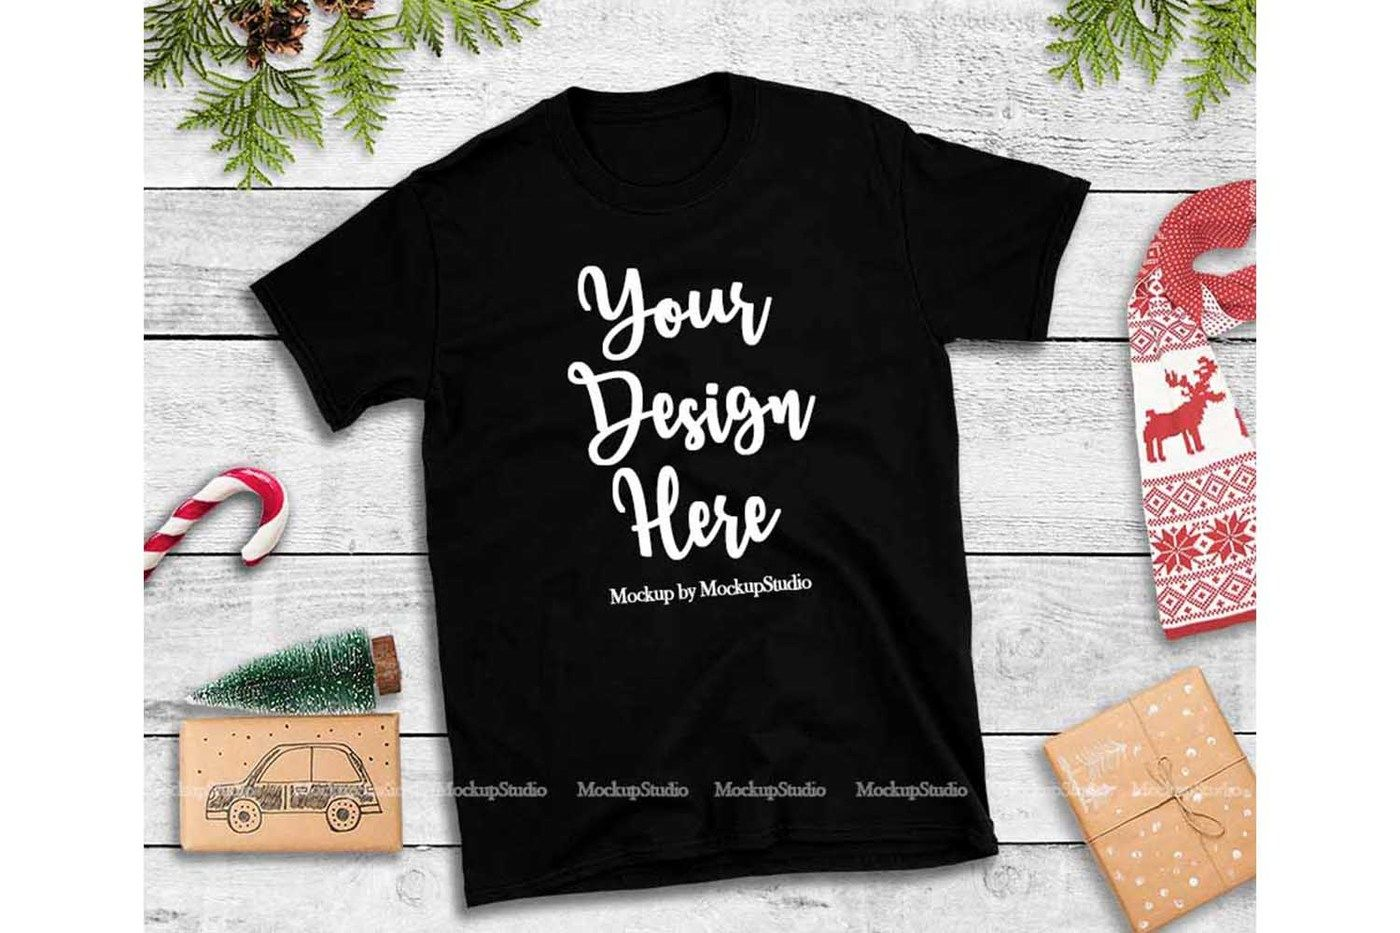 Download Dress Shirt Mockup Psd Free Download Yellowimages